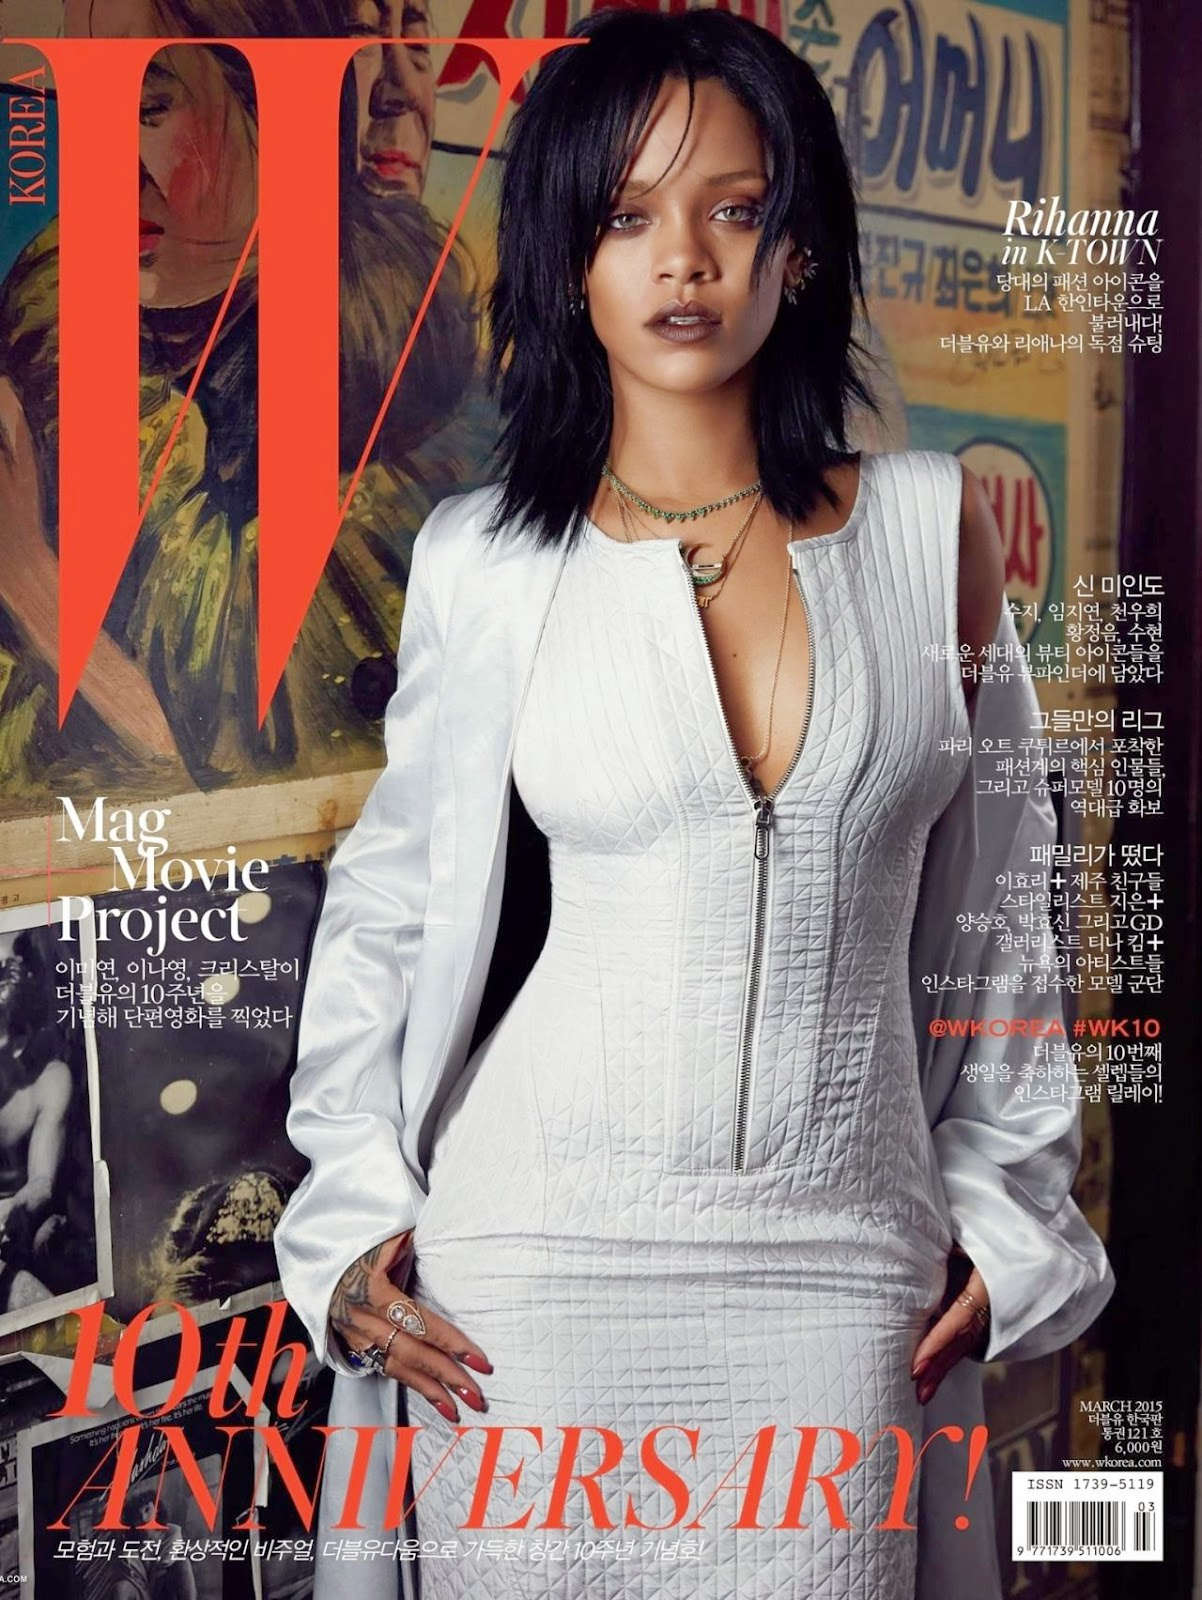 Rihanna is the cover star of W Magazine Korea March 2015 issue